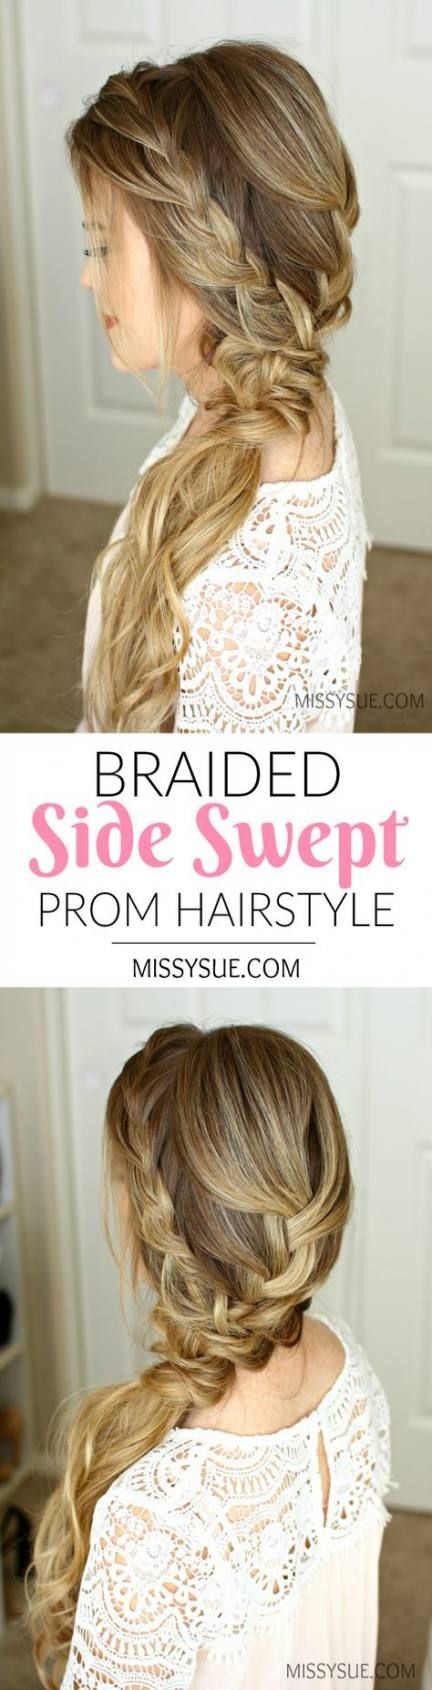 49+ Super Ideas Hairstyles Prom Side Bridesmaid   Half up ...